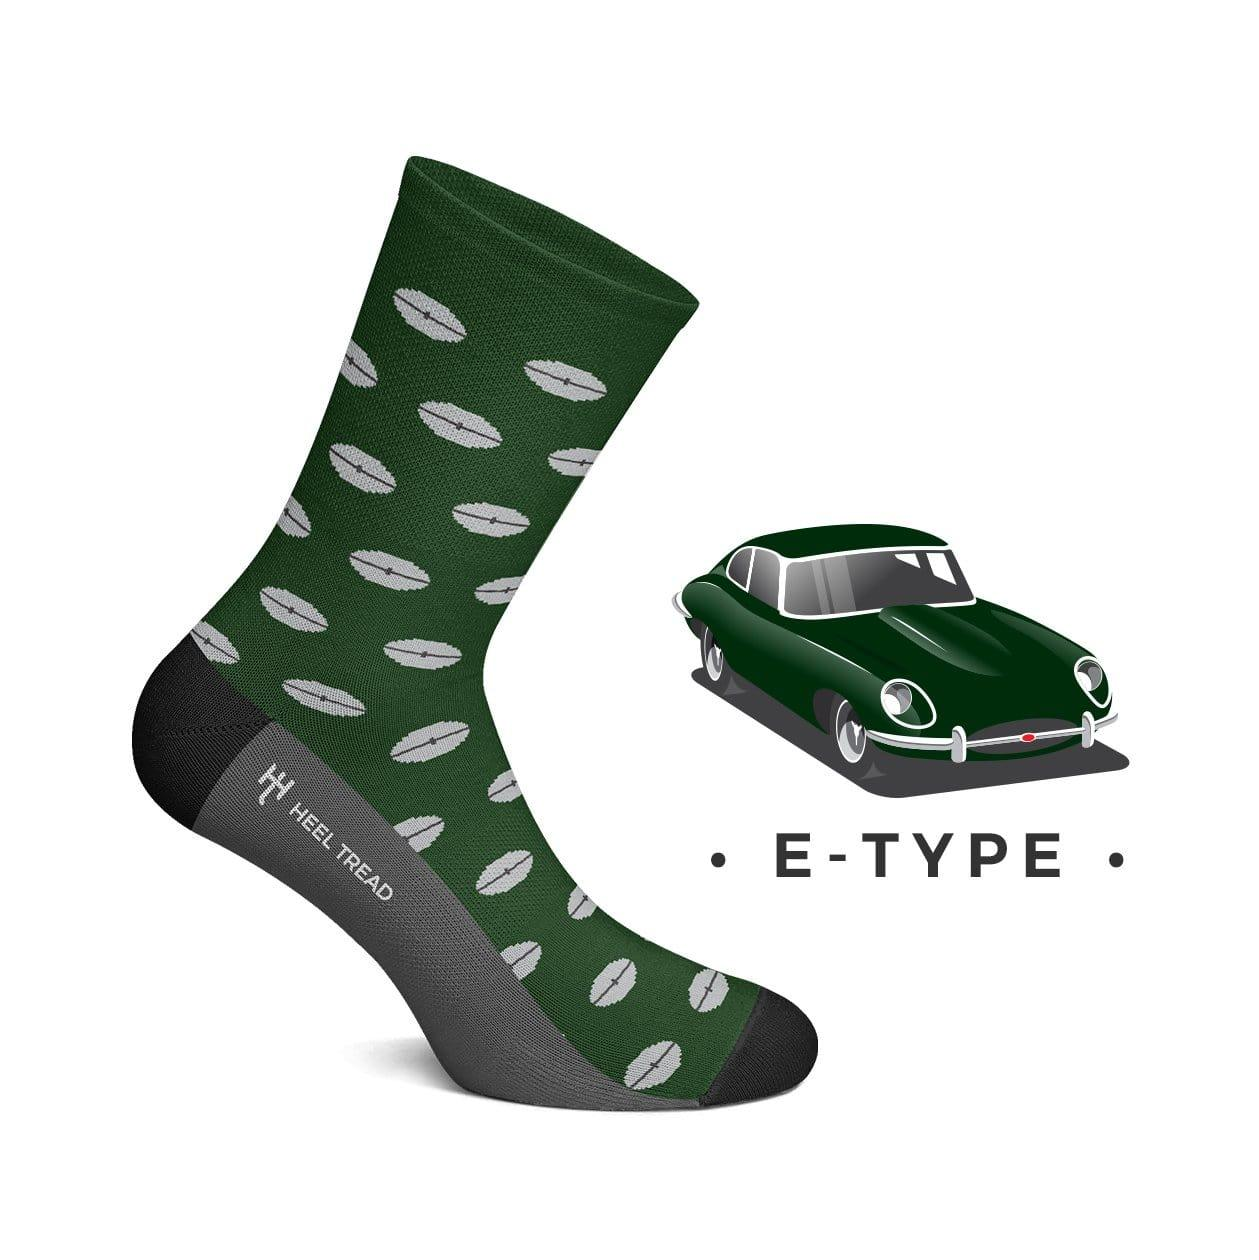 E-Type Socks - Corleon